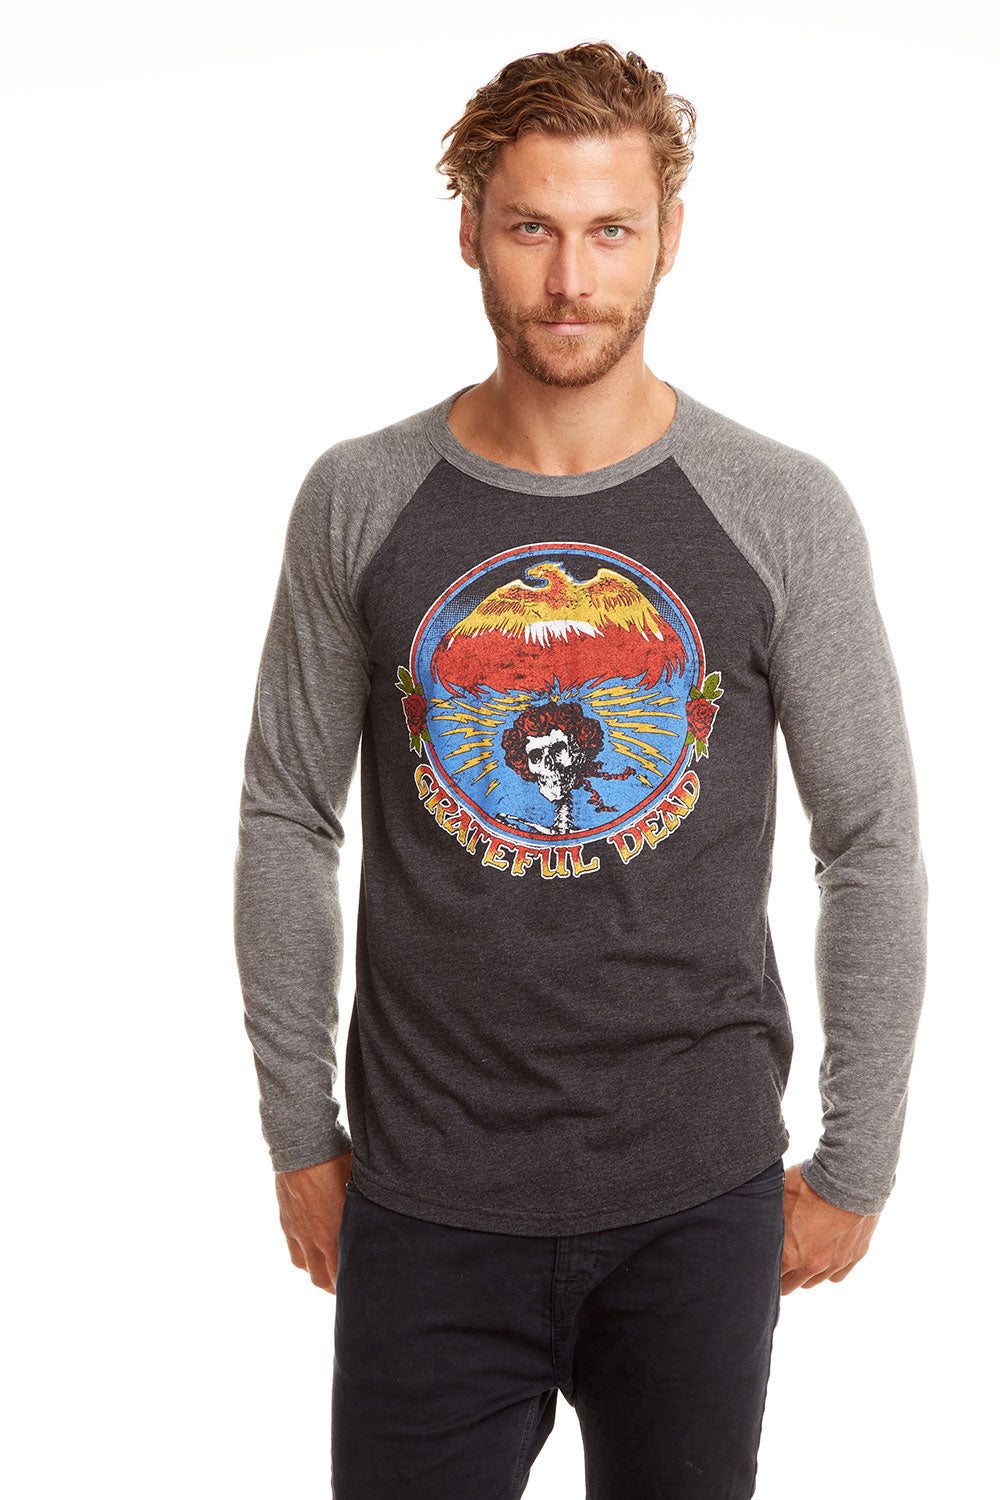 Grateful Dead - Phoenix MENS chaserbrand4.myshopify.com